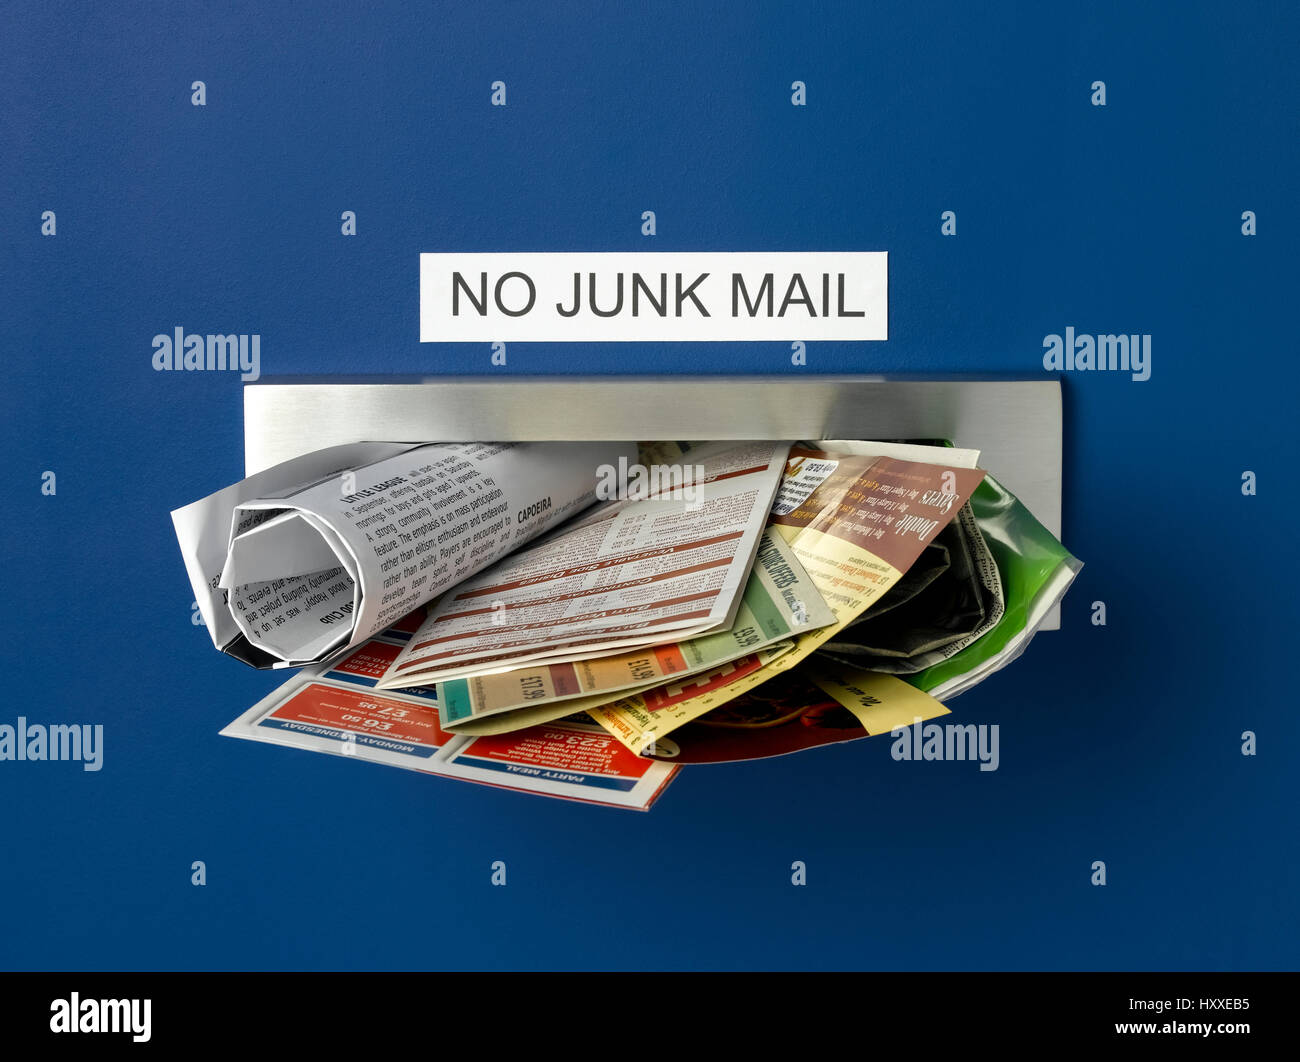 Postbox overflowing with junk maill - Stock Image